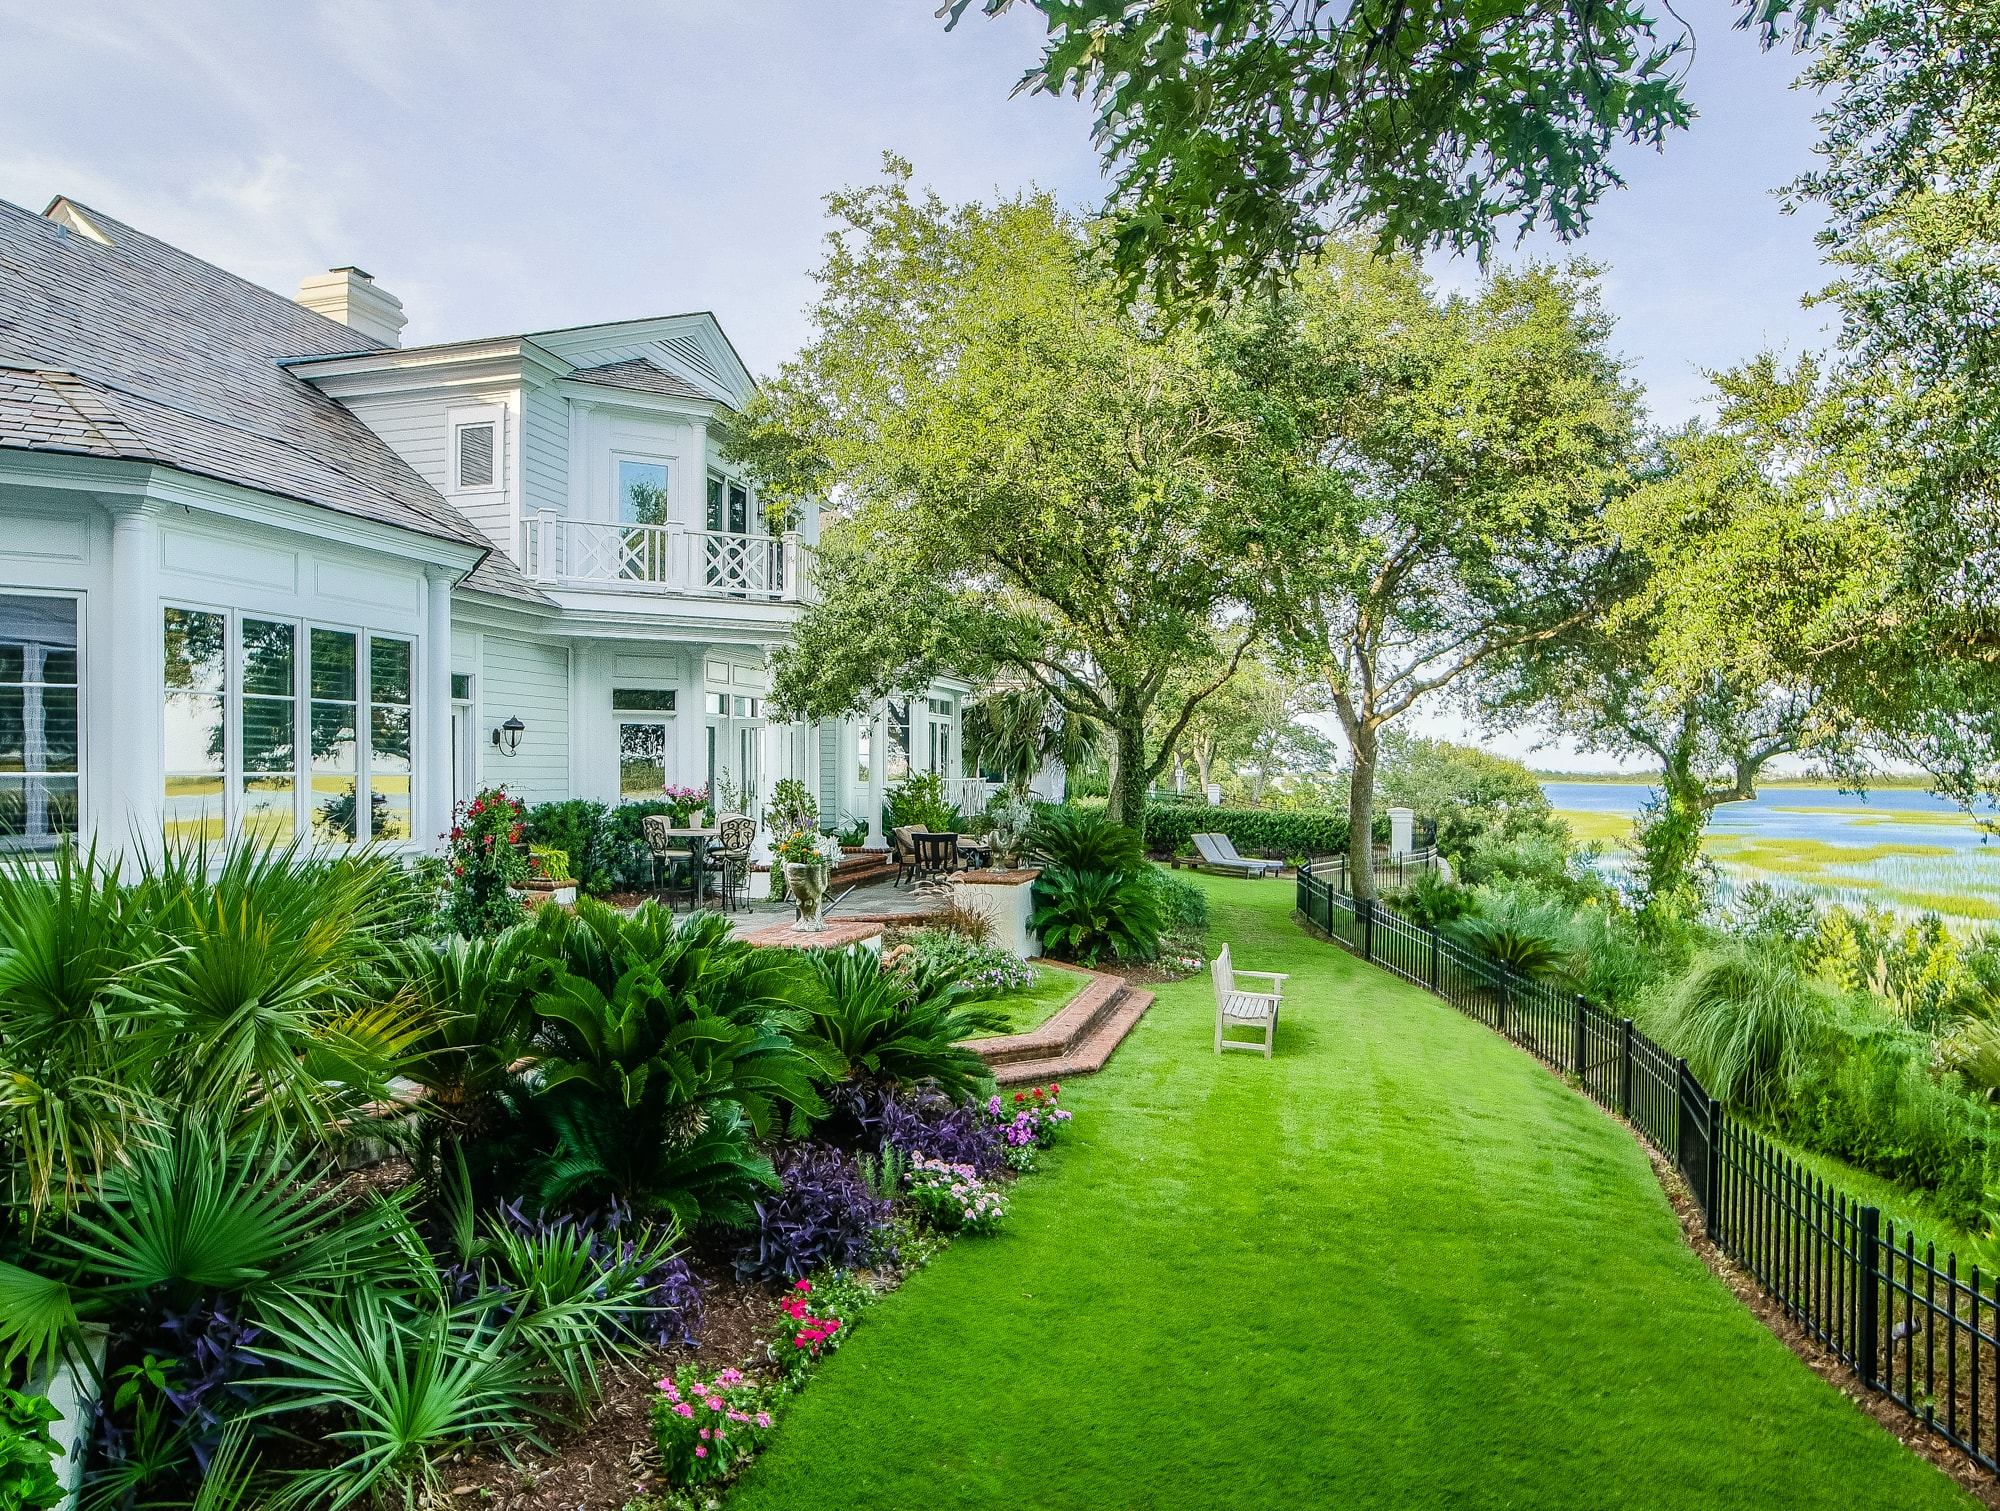 Single Family Home for Sale at Elegant Island Style on the Water 1063 Ocean Ridge Drive Landfall, Wilmington, North Carolina, 28405 United States